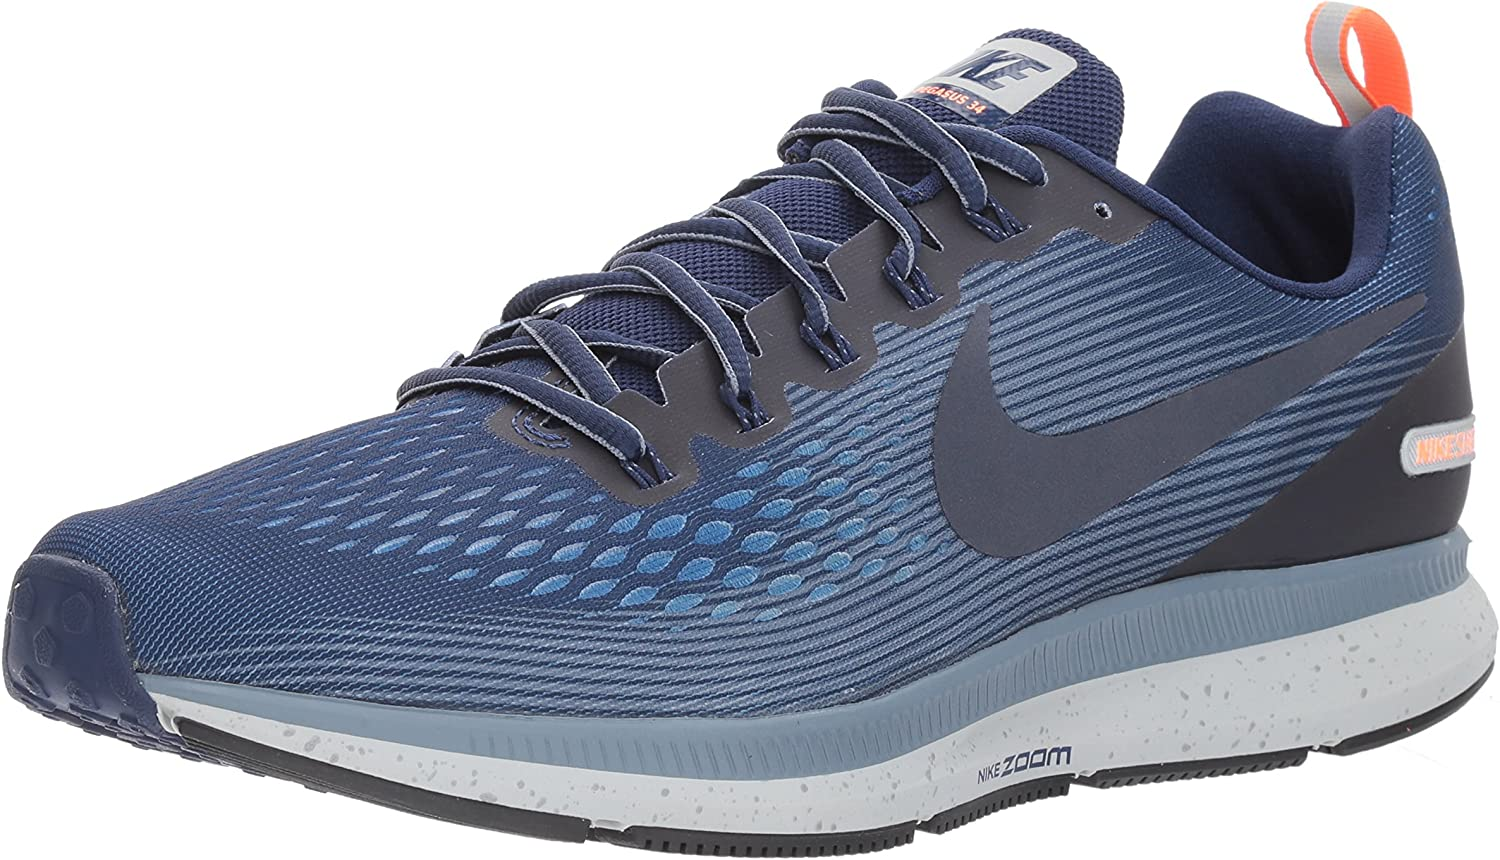 Piquete Mantenimiento enseñar  Amazon.com | Nike Men's Air Zoom Pegasus 34 Shield Running Shoes (11,  Binary Blue/Obsidian/Armory Blue) | Road Running